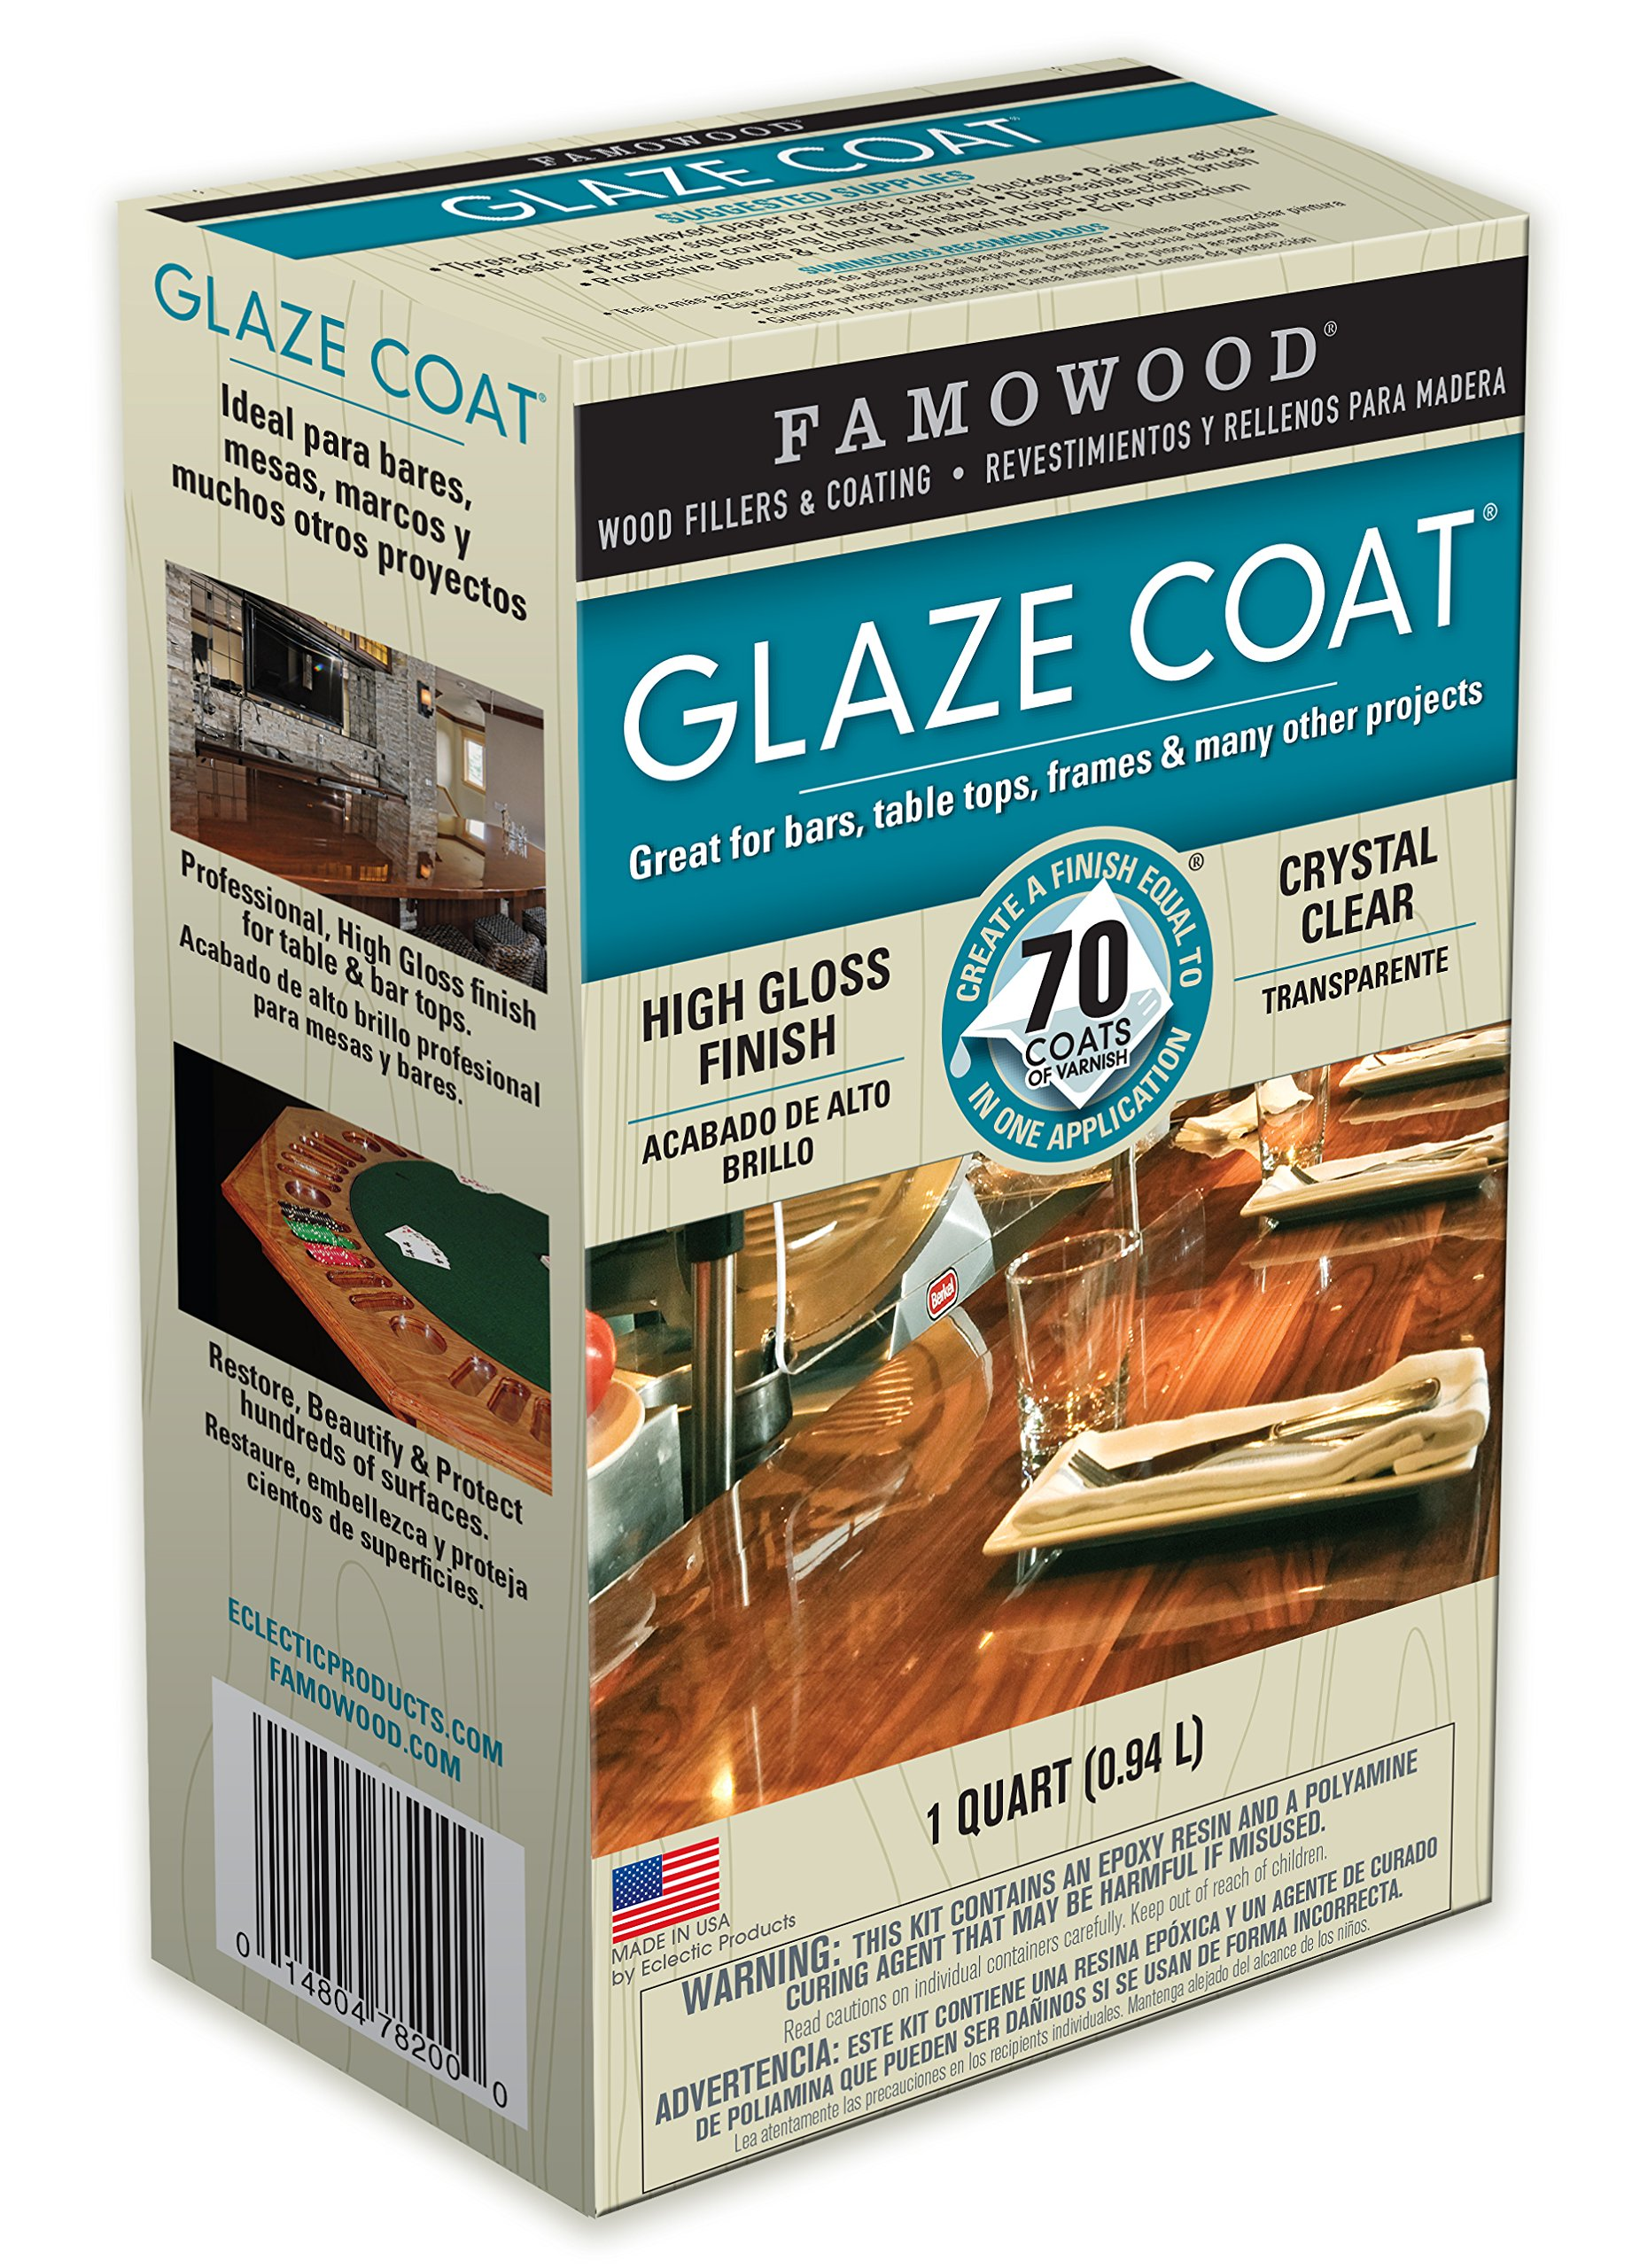 FamoWood 5050080 Glaze Coat Epoxy Kit - 1 Quart, Clear by FamoWood